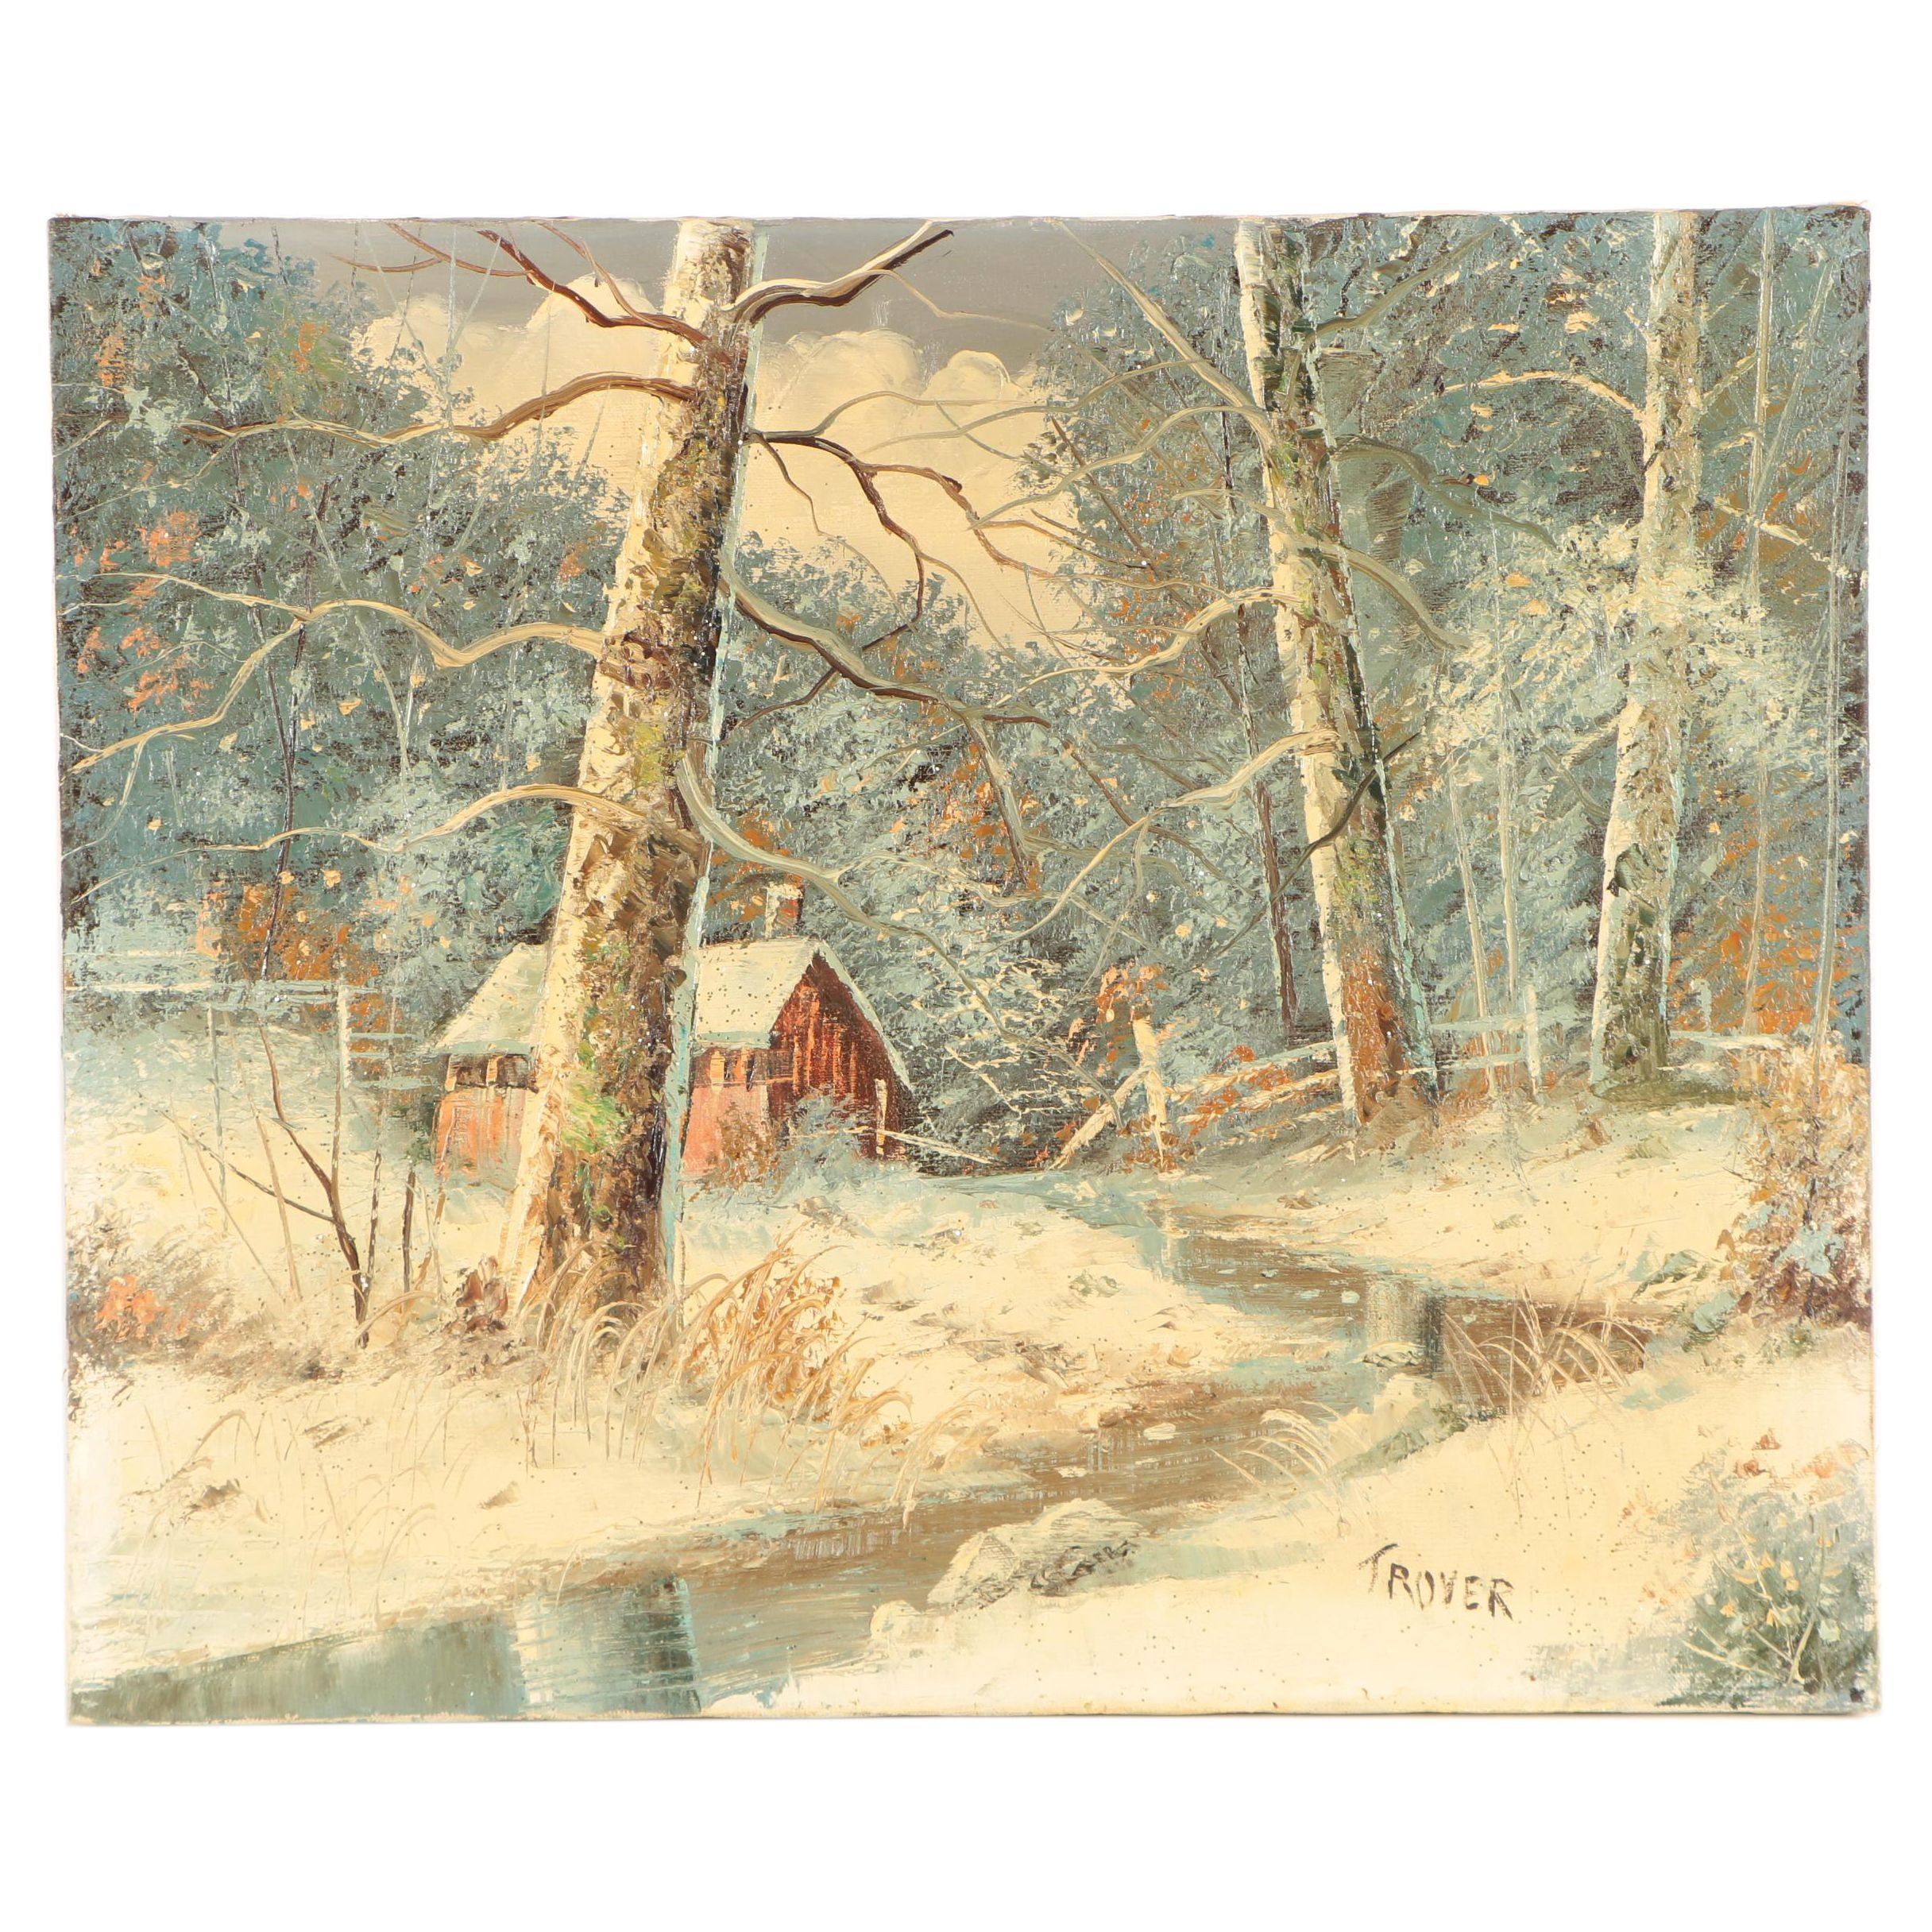 Joseph Trover Oil Painting of a Winter Landscape